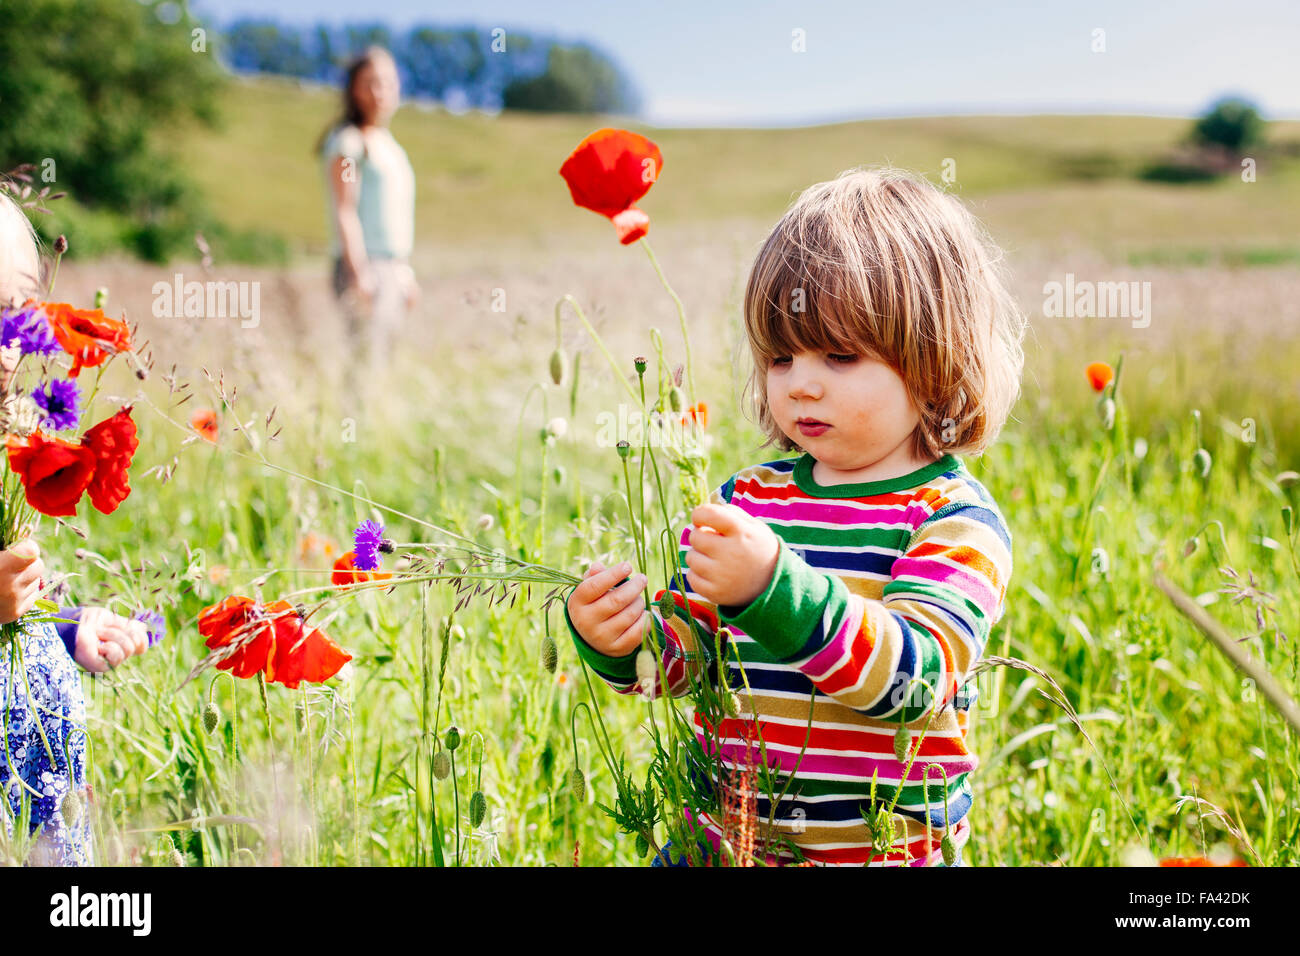 Cute girl holding poppy flowers at grassy field - Stock Image